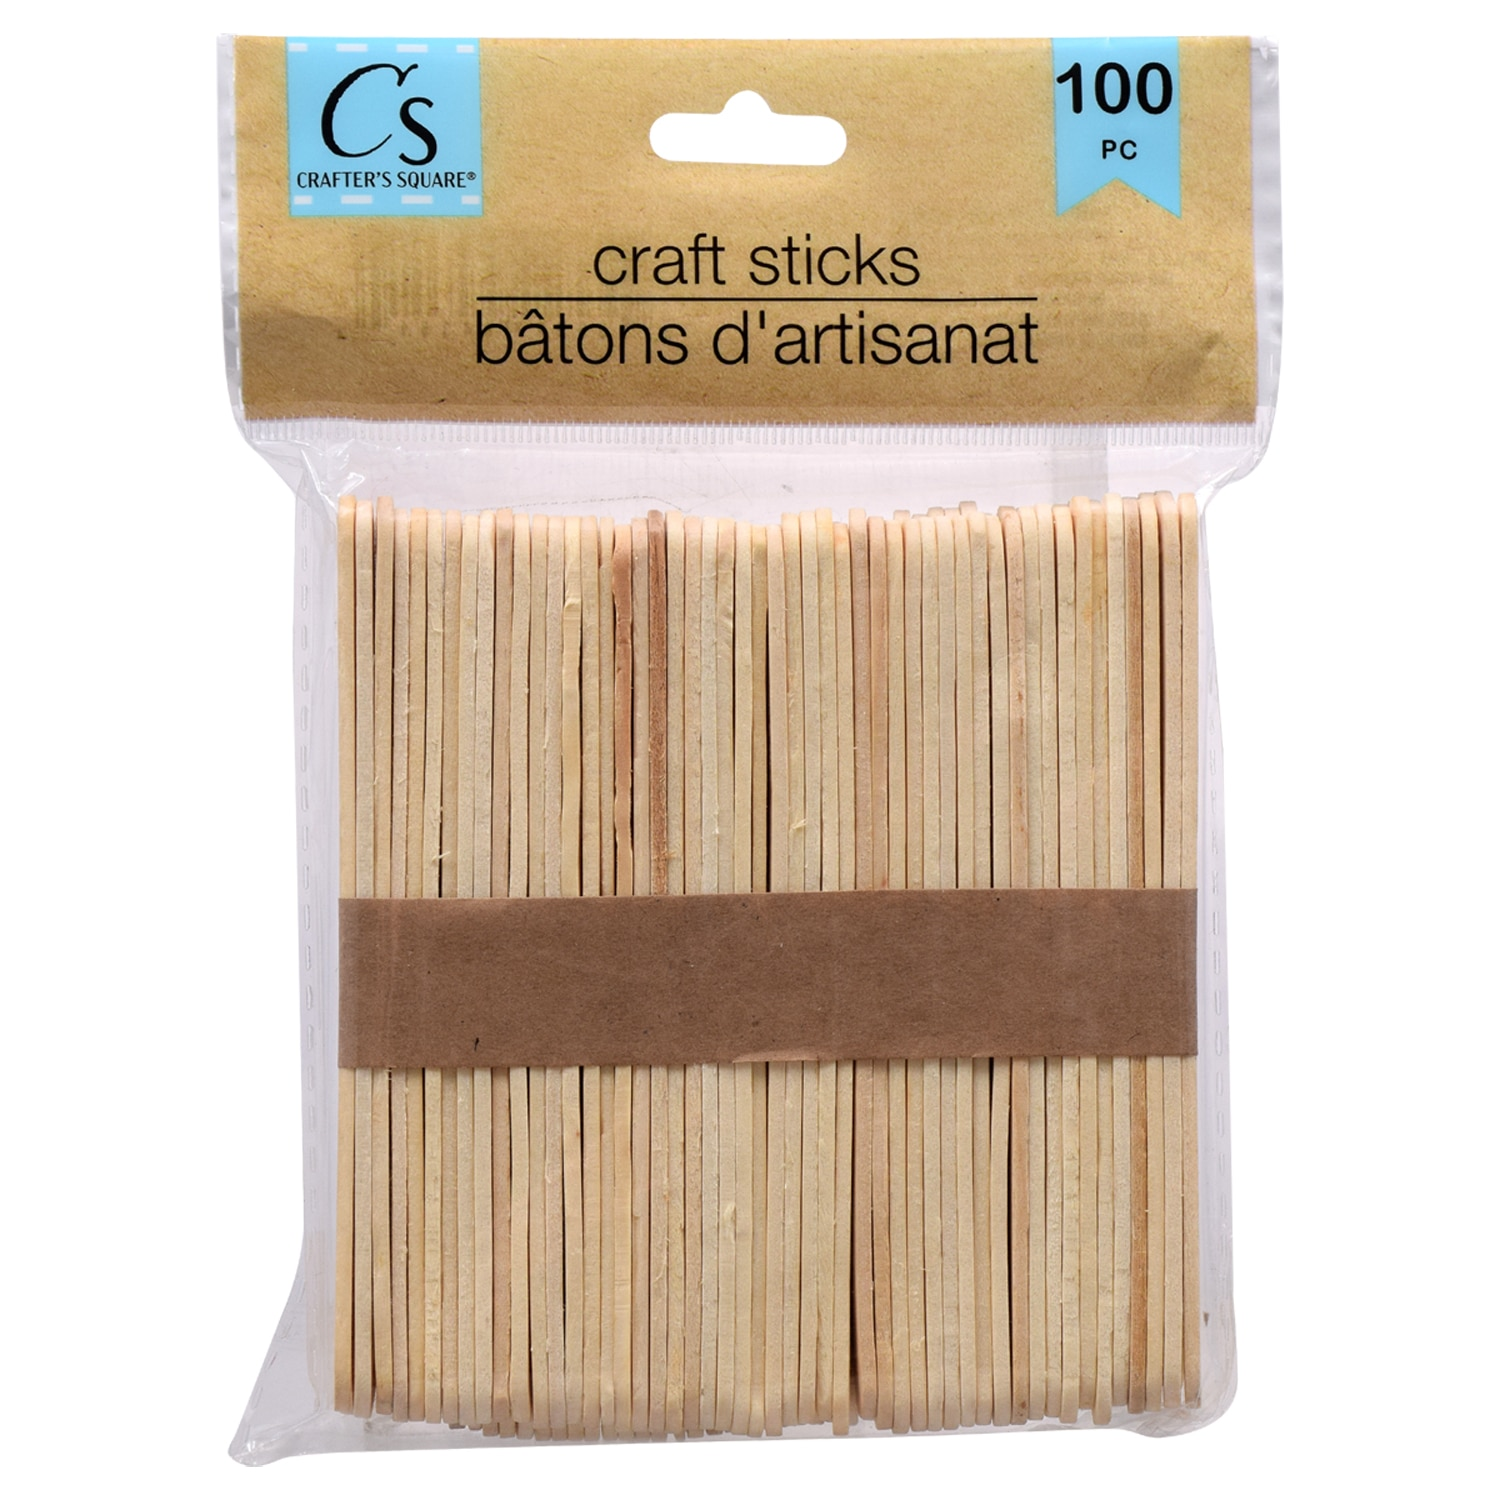 4.5 Colored Wooden Craft Sticks Pack of 100ct